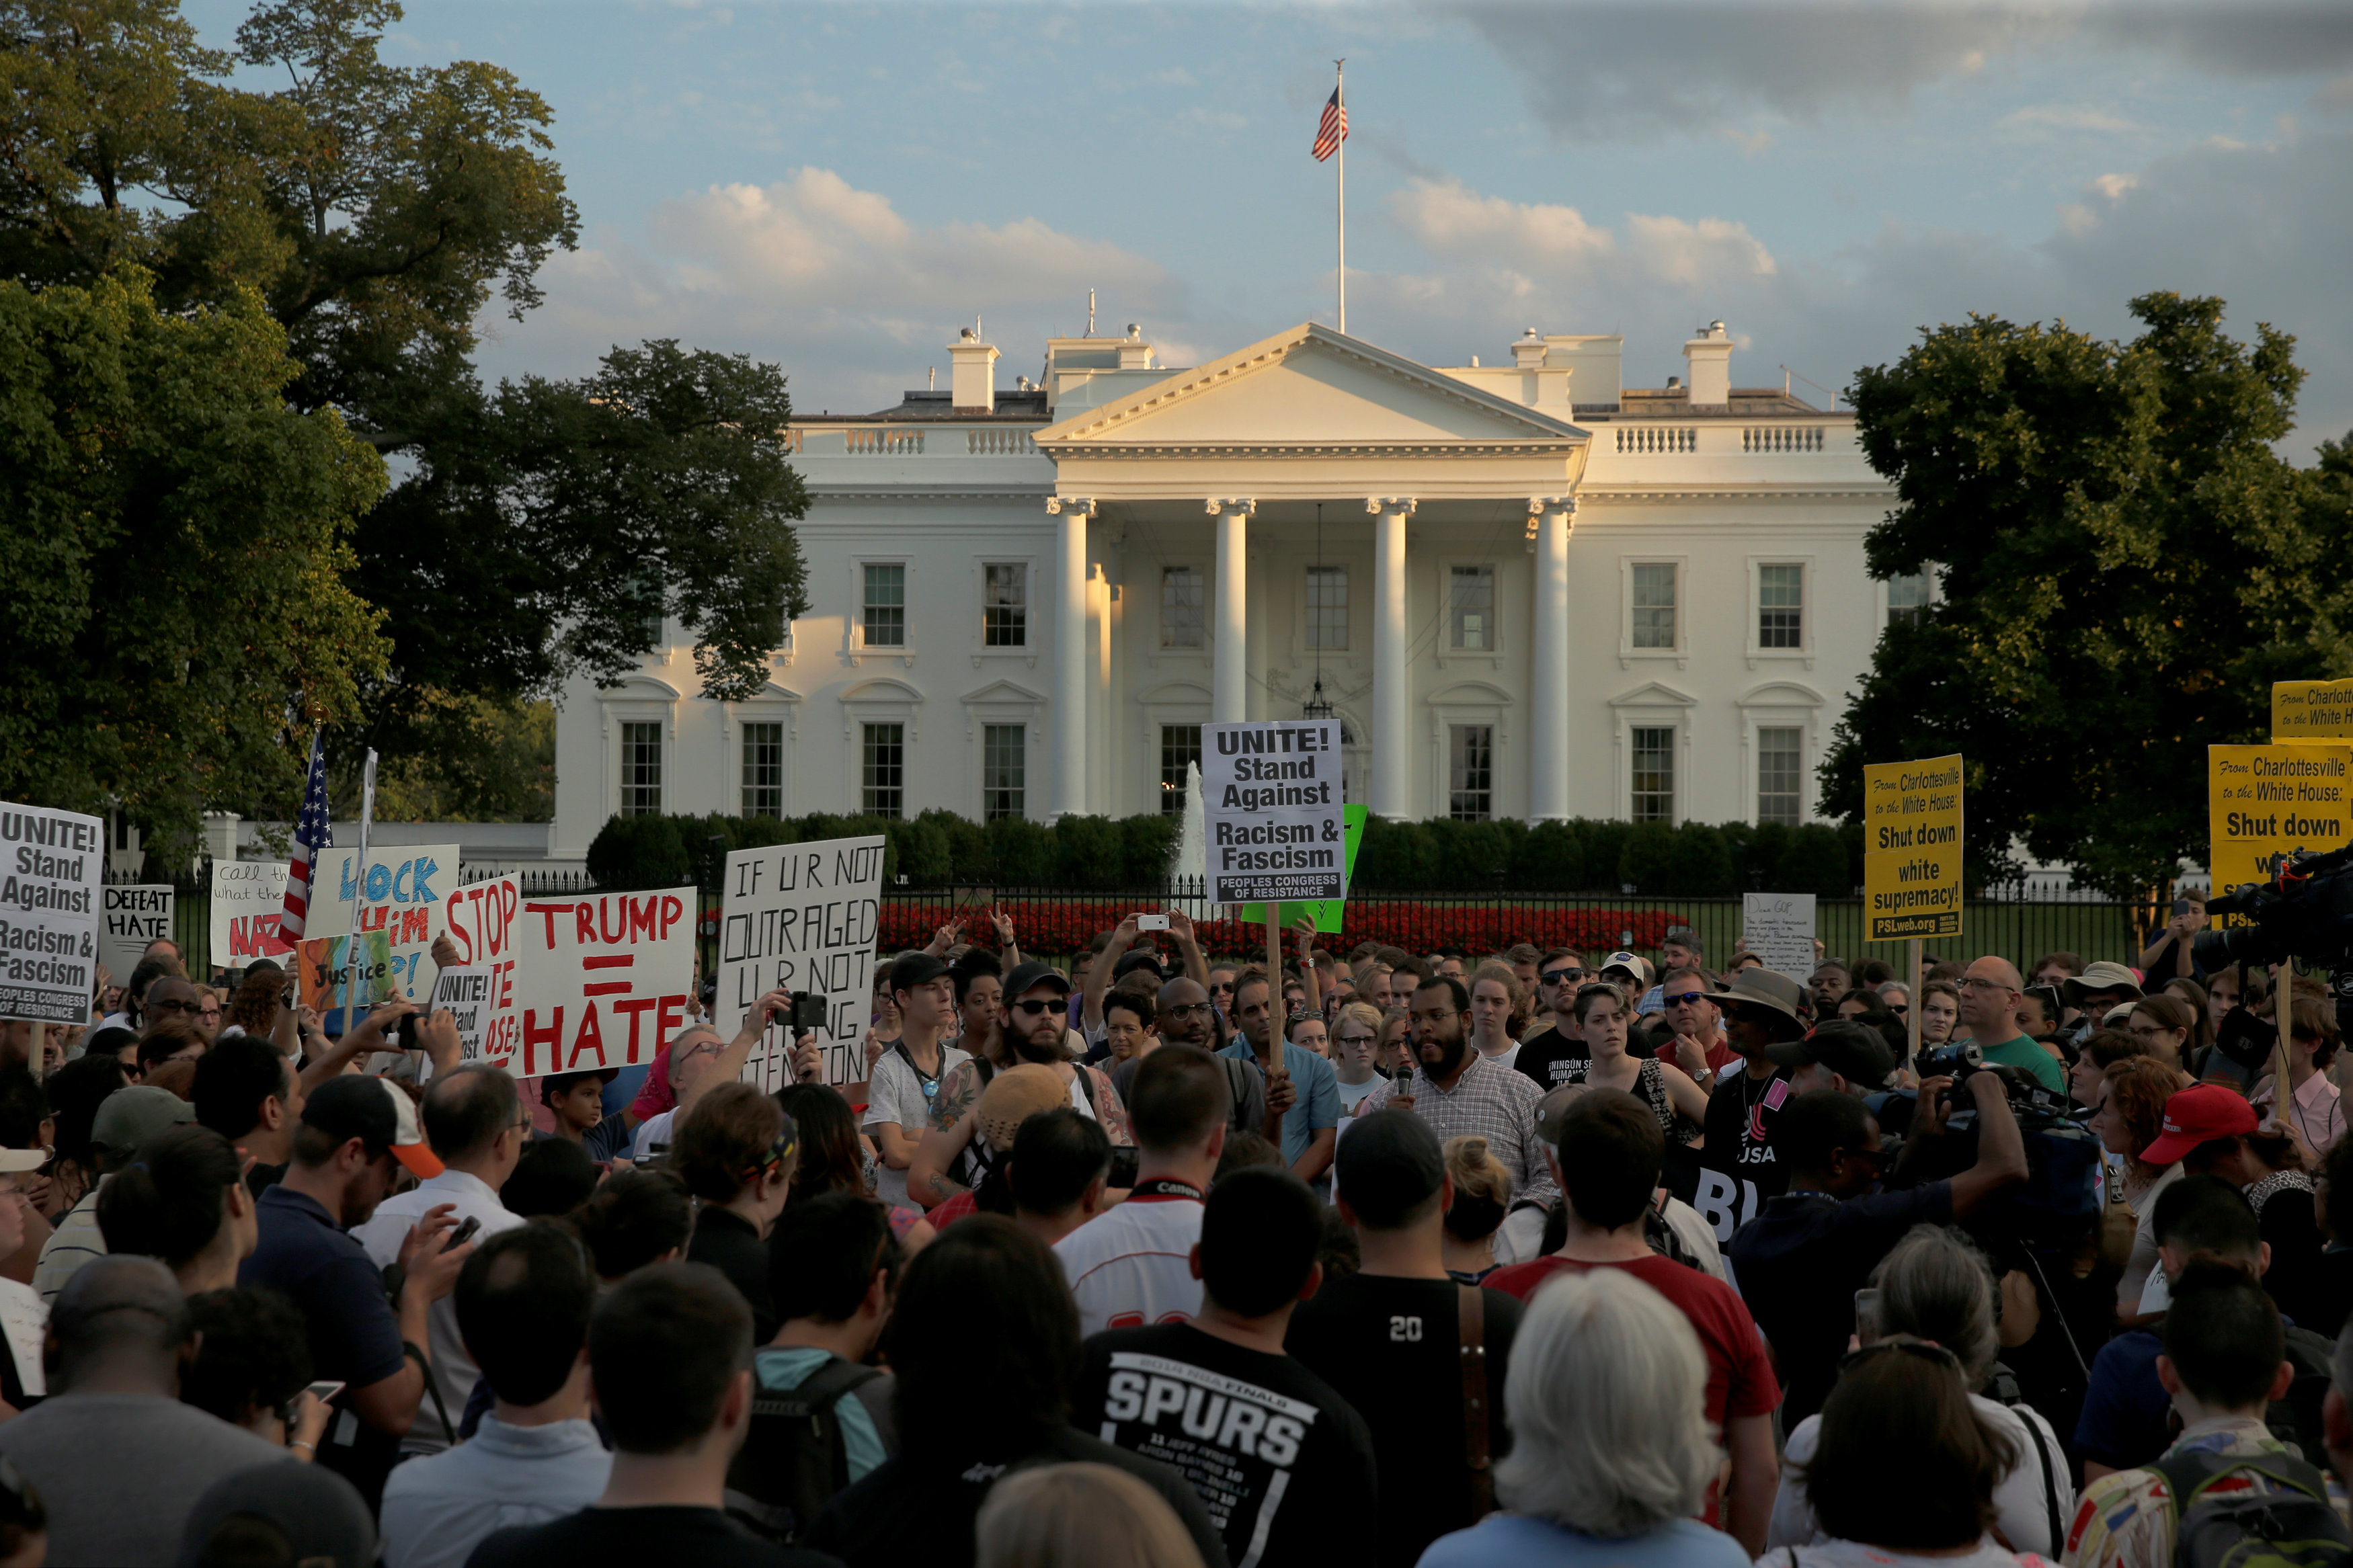 """People gather for a vigil in response to the death of a counter-demonstrator at the """"Unite the Right"""" rally in Charlottesville, outside the White House in Washington,"""